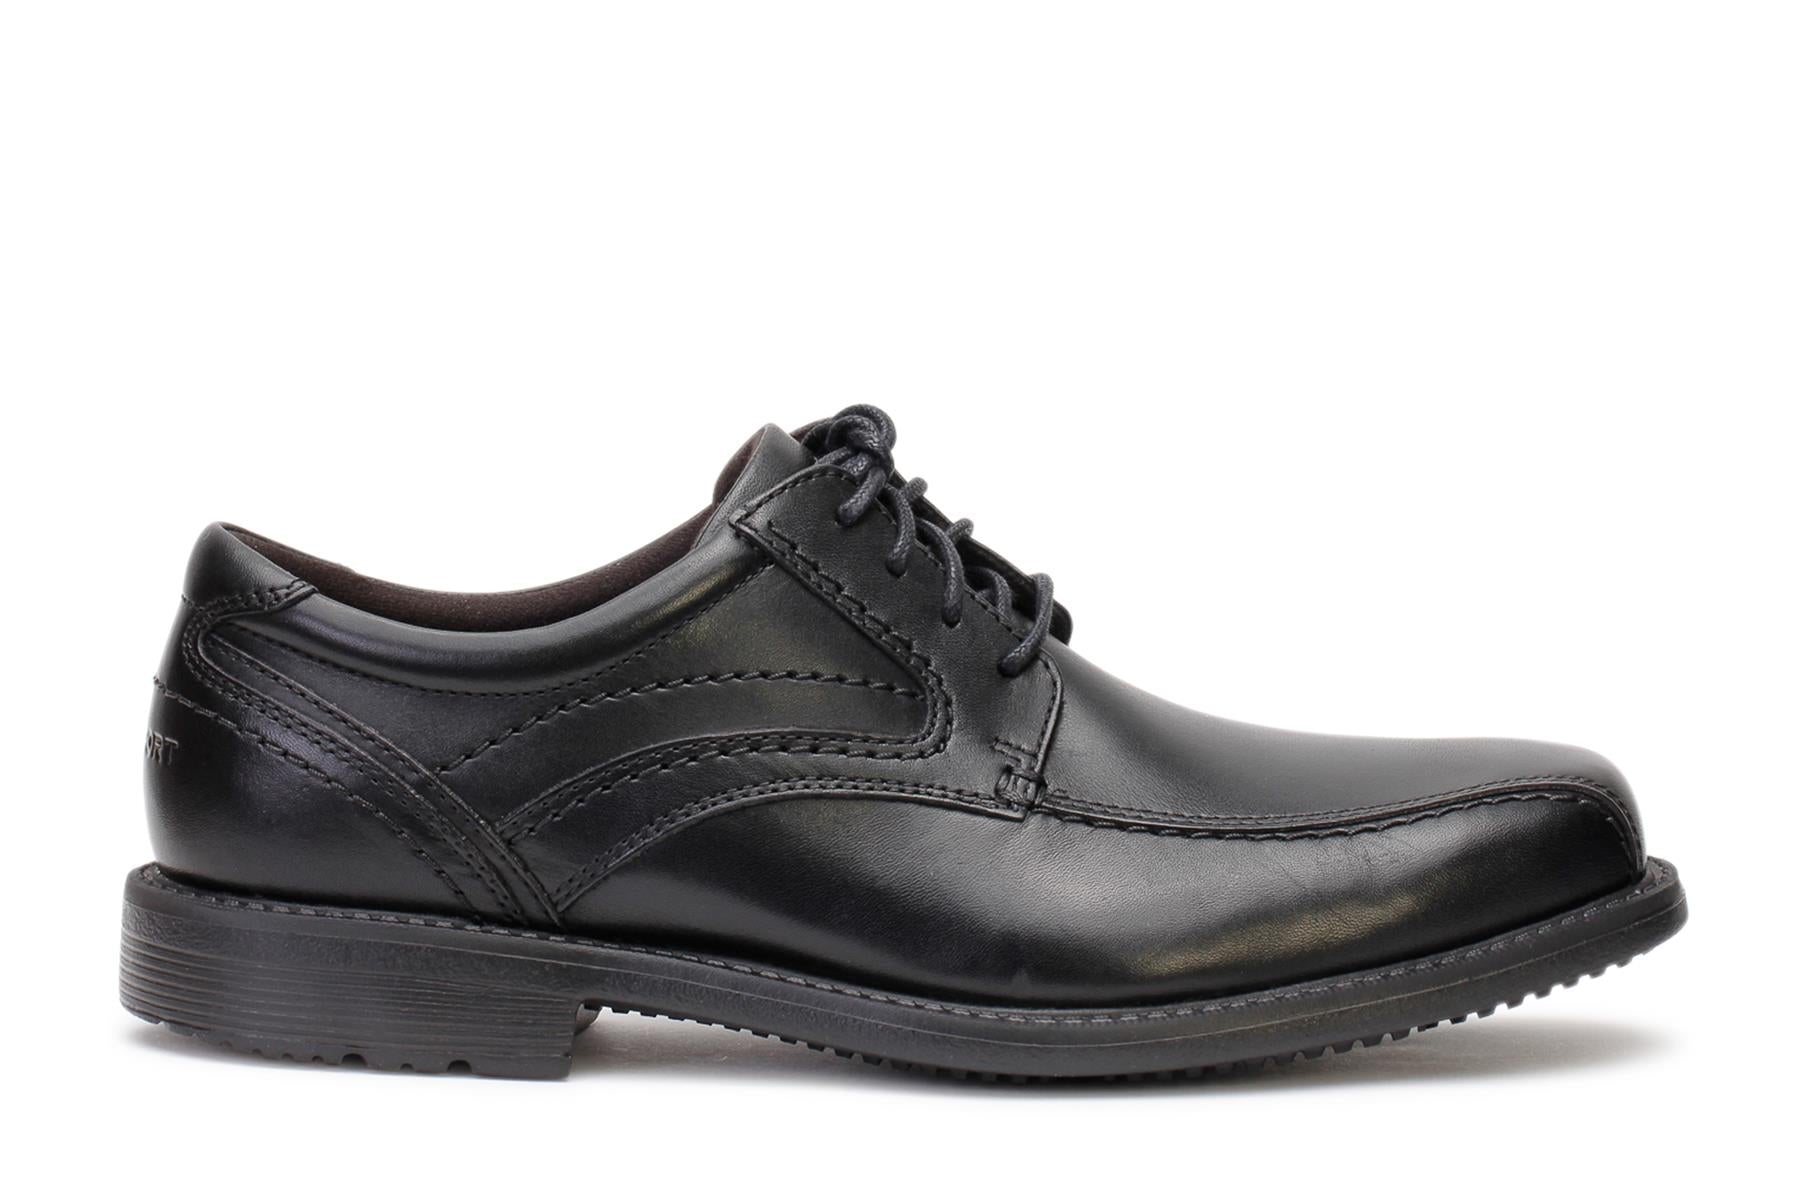 Classic Tradition Rockport Dress Shoes